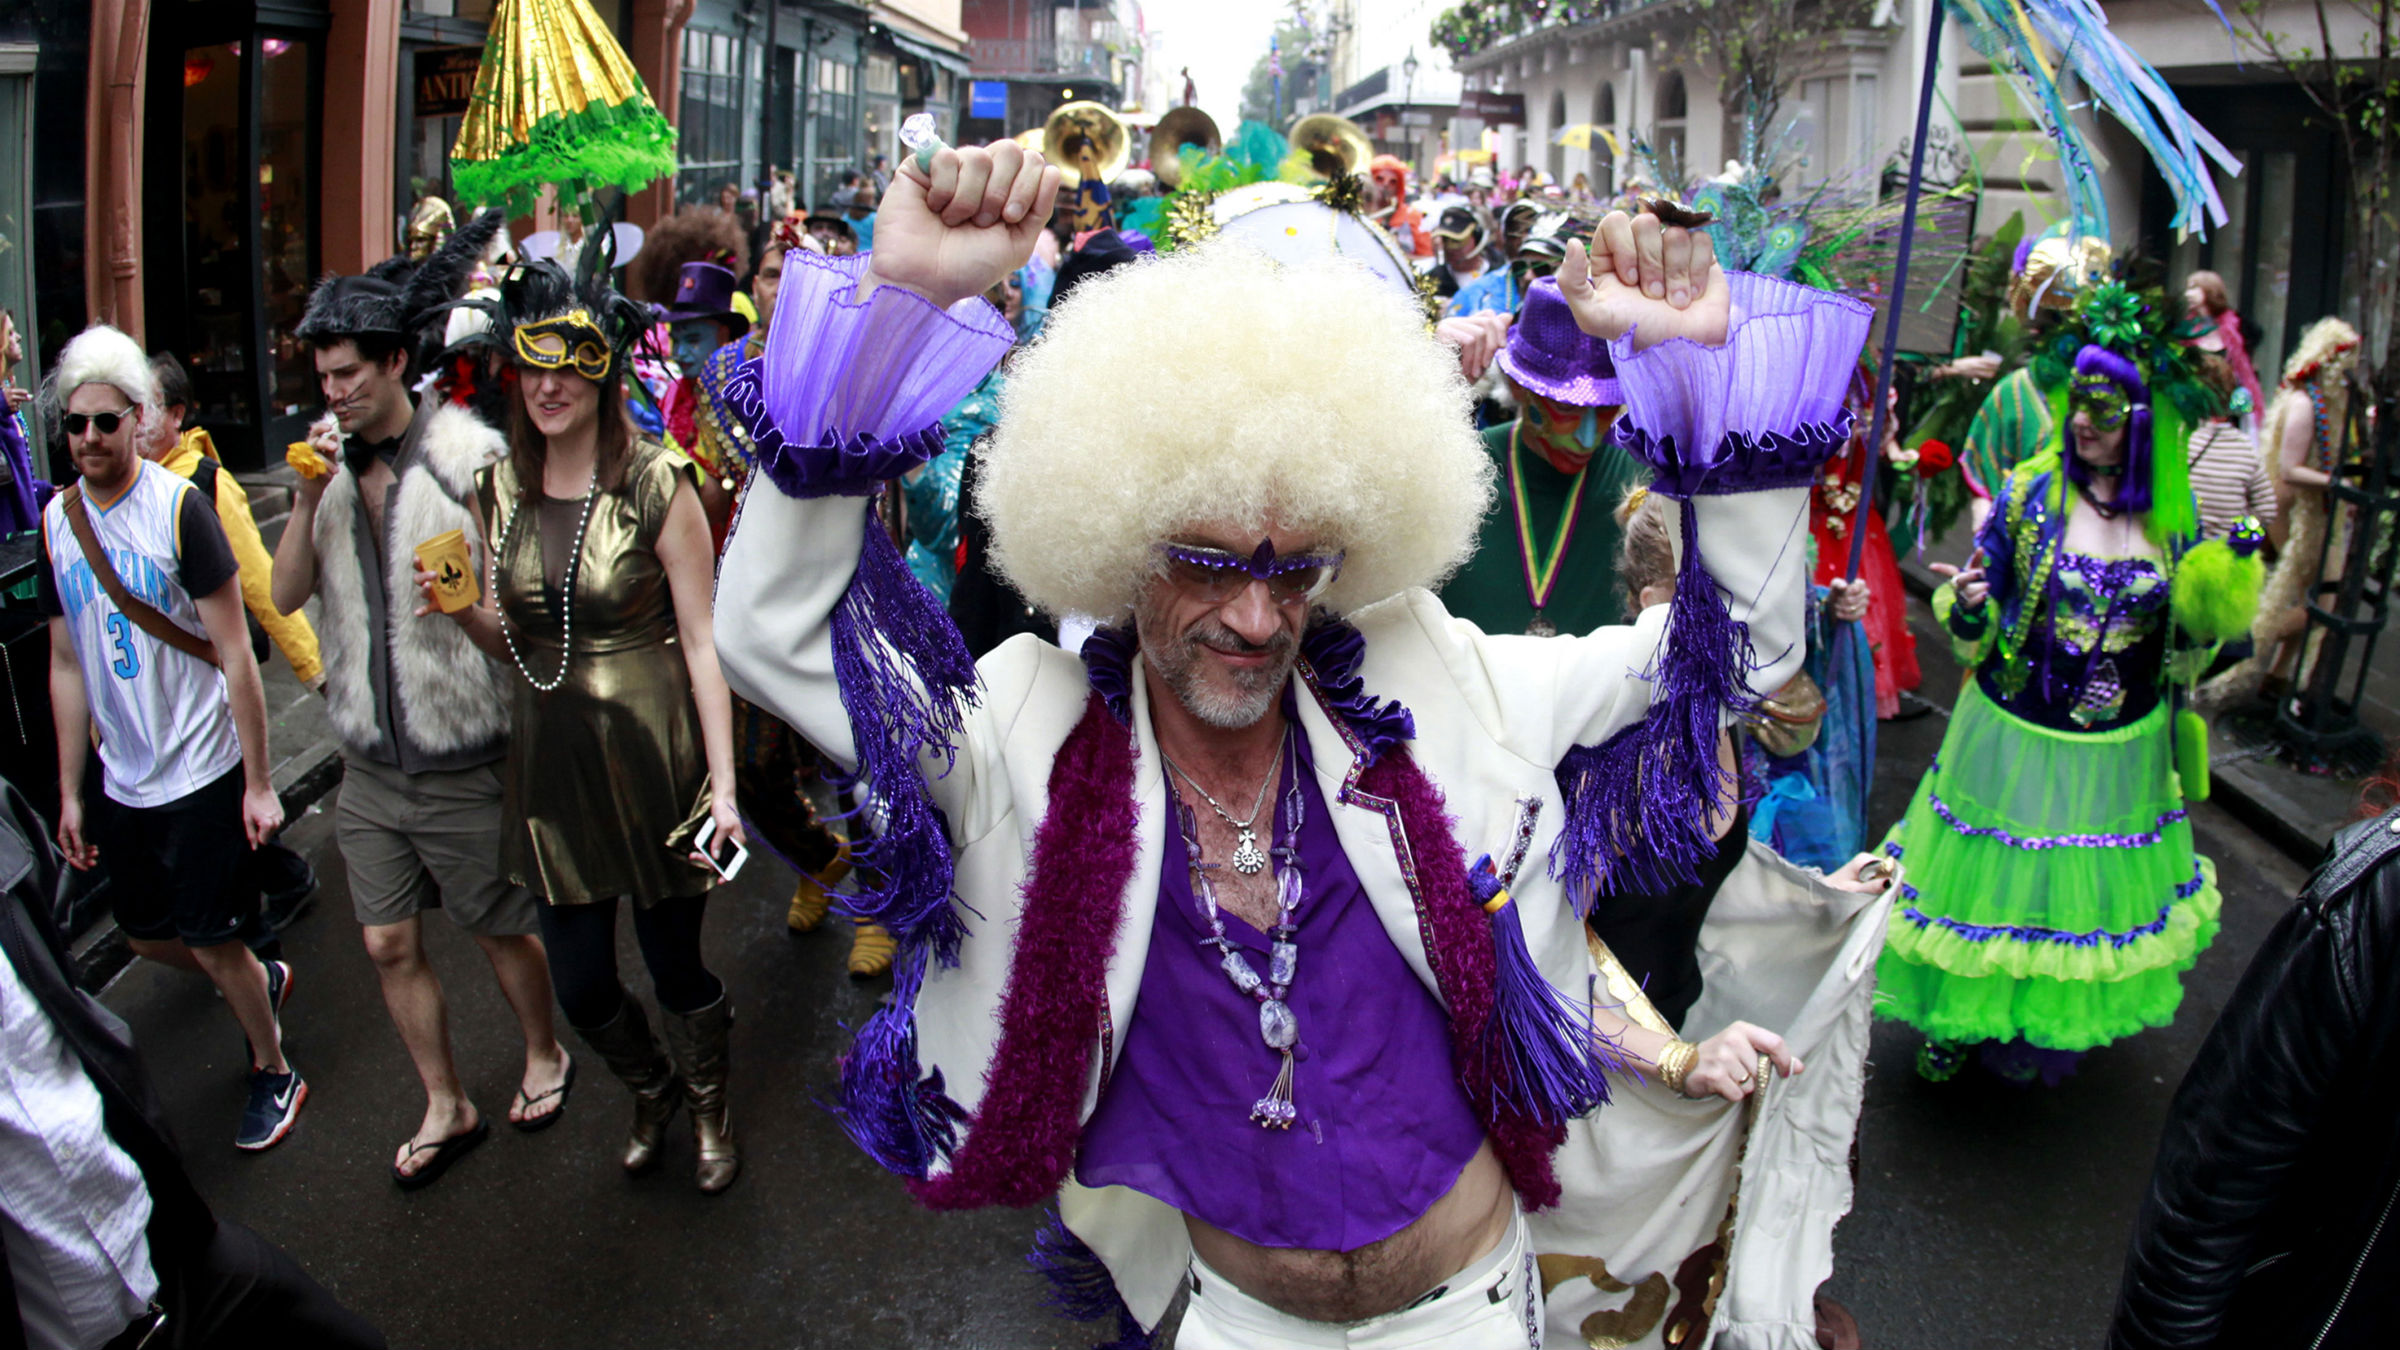 Revelers parade through the French Quarter on Mardi Gras Day in New Orleans, Louisiana February 12, 2013.